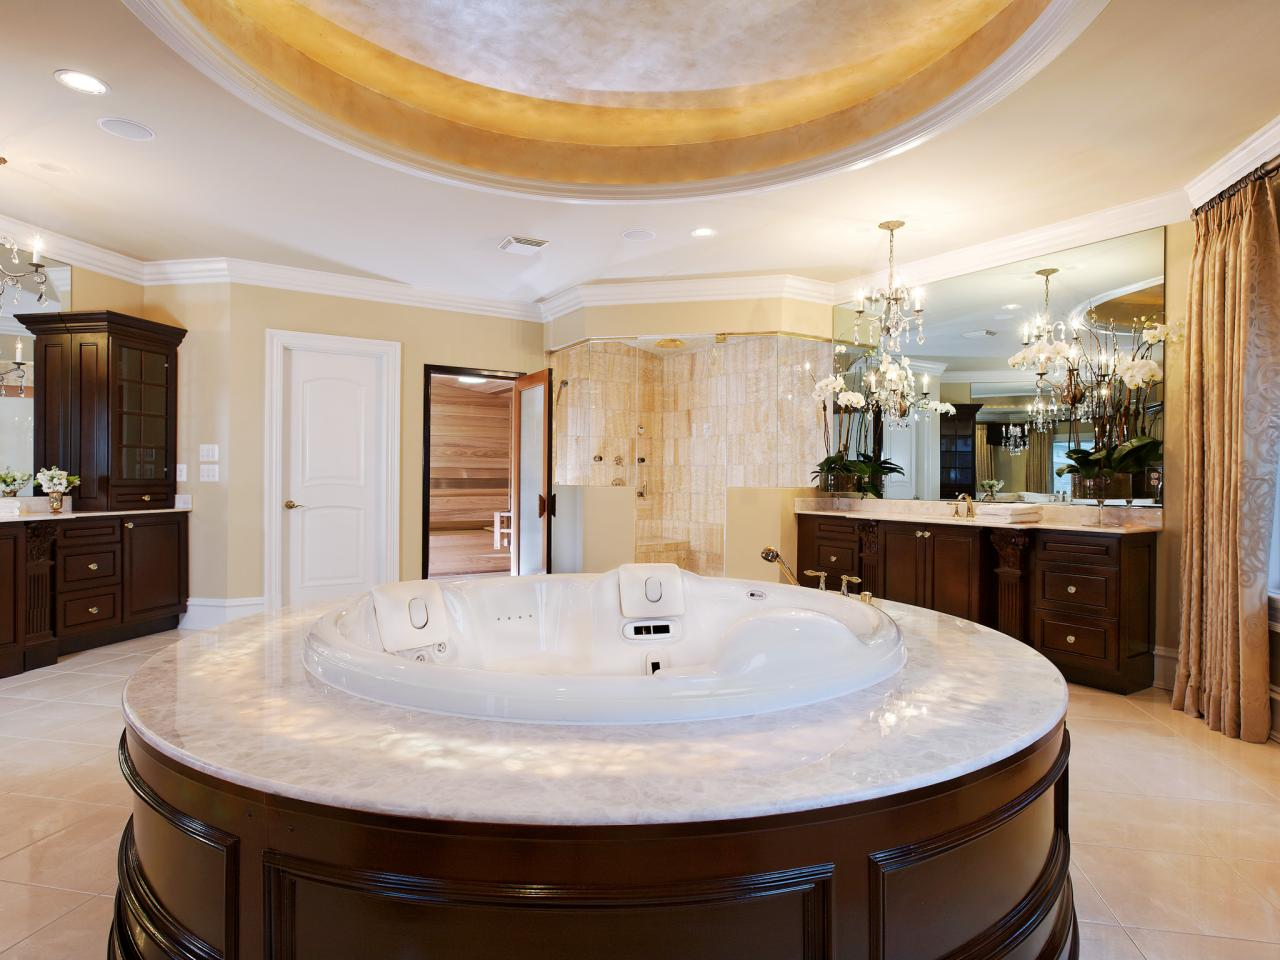 Whirlpool tub designs and options hgtv pictures tips hgtv for Bathroom ideas jacuzzi